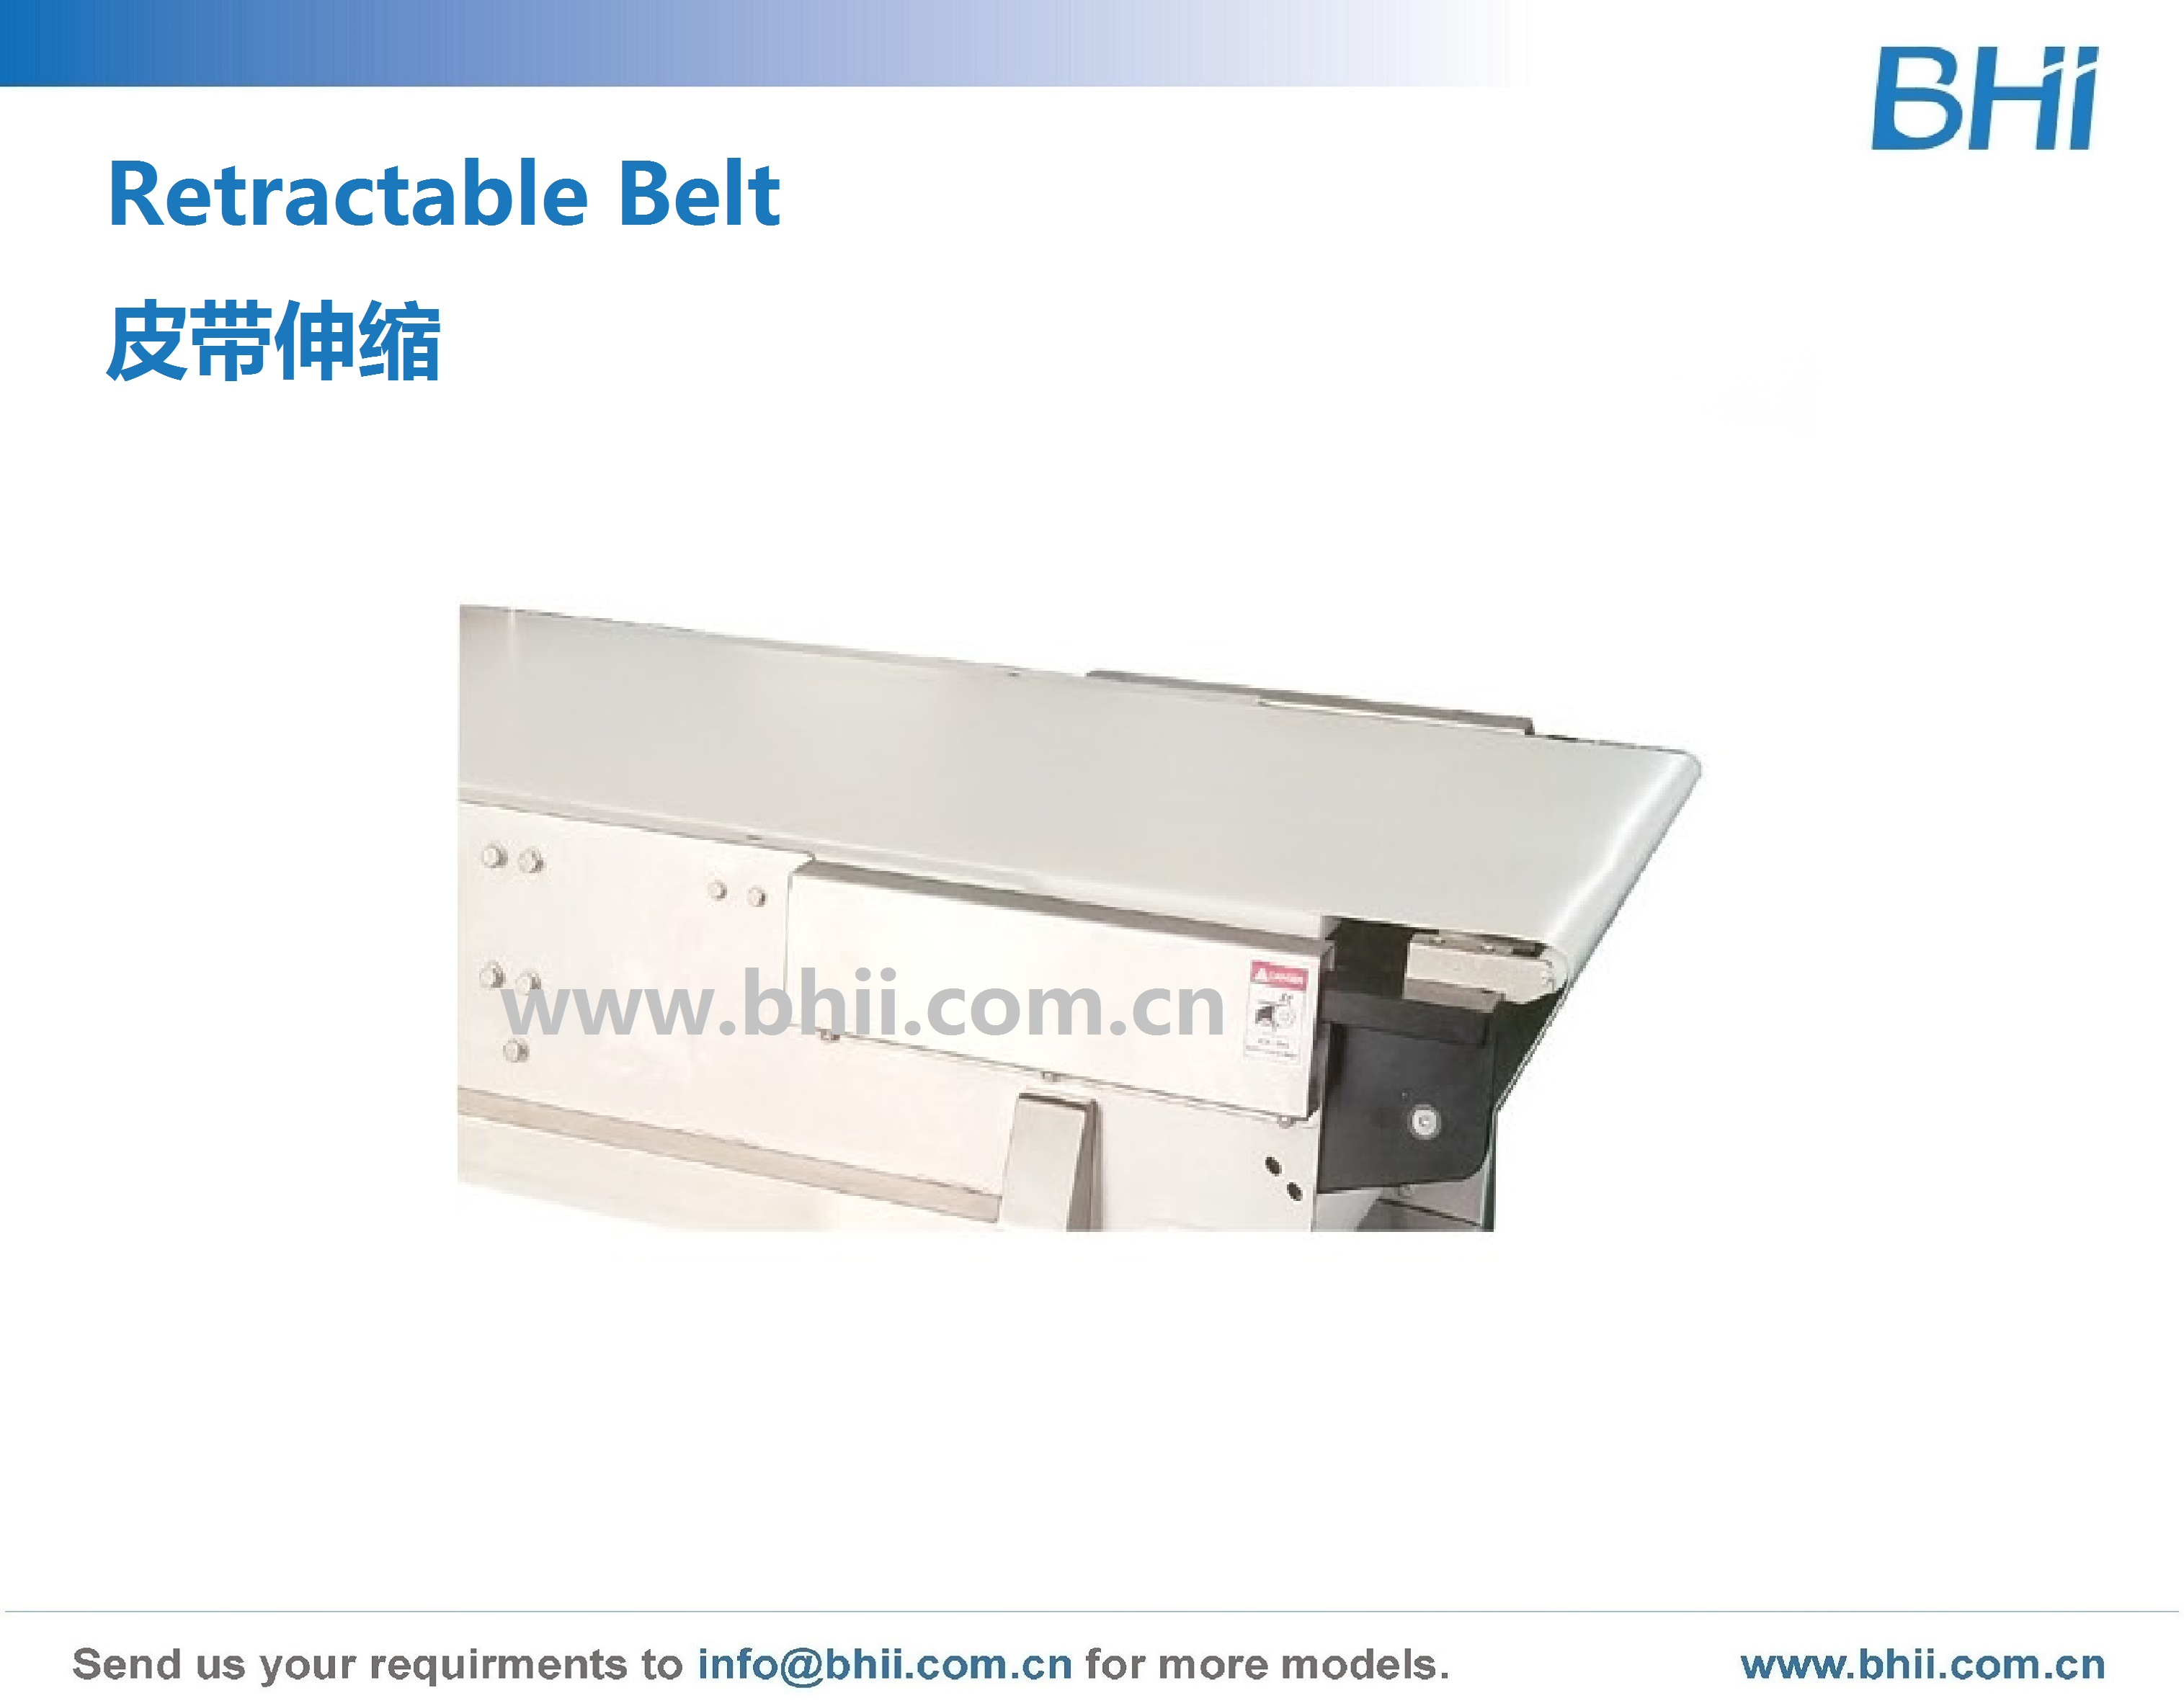 Retractable Belt